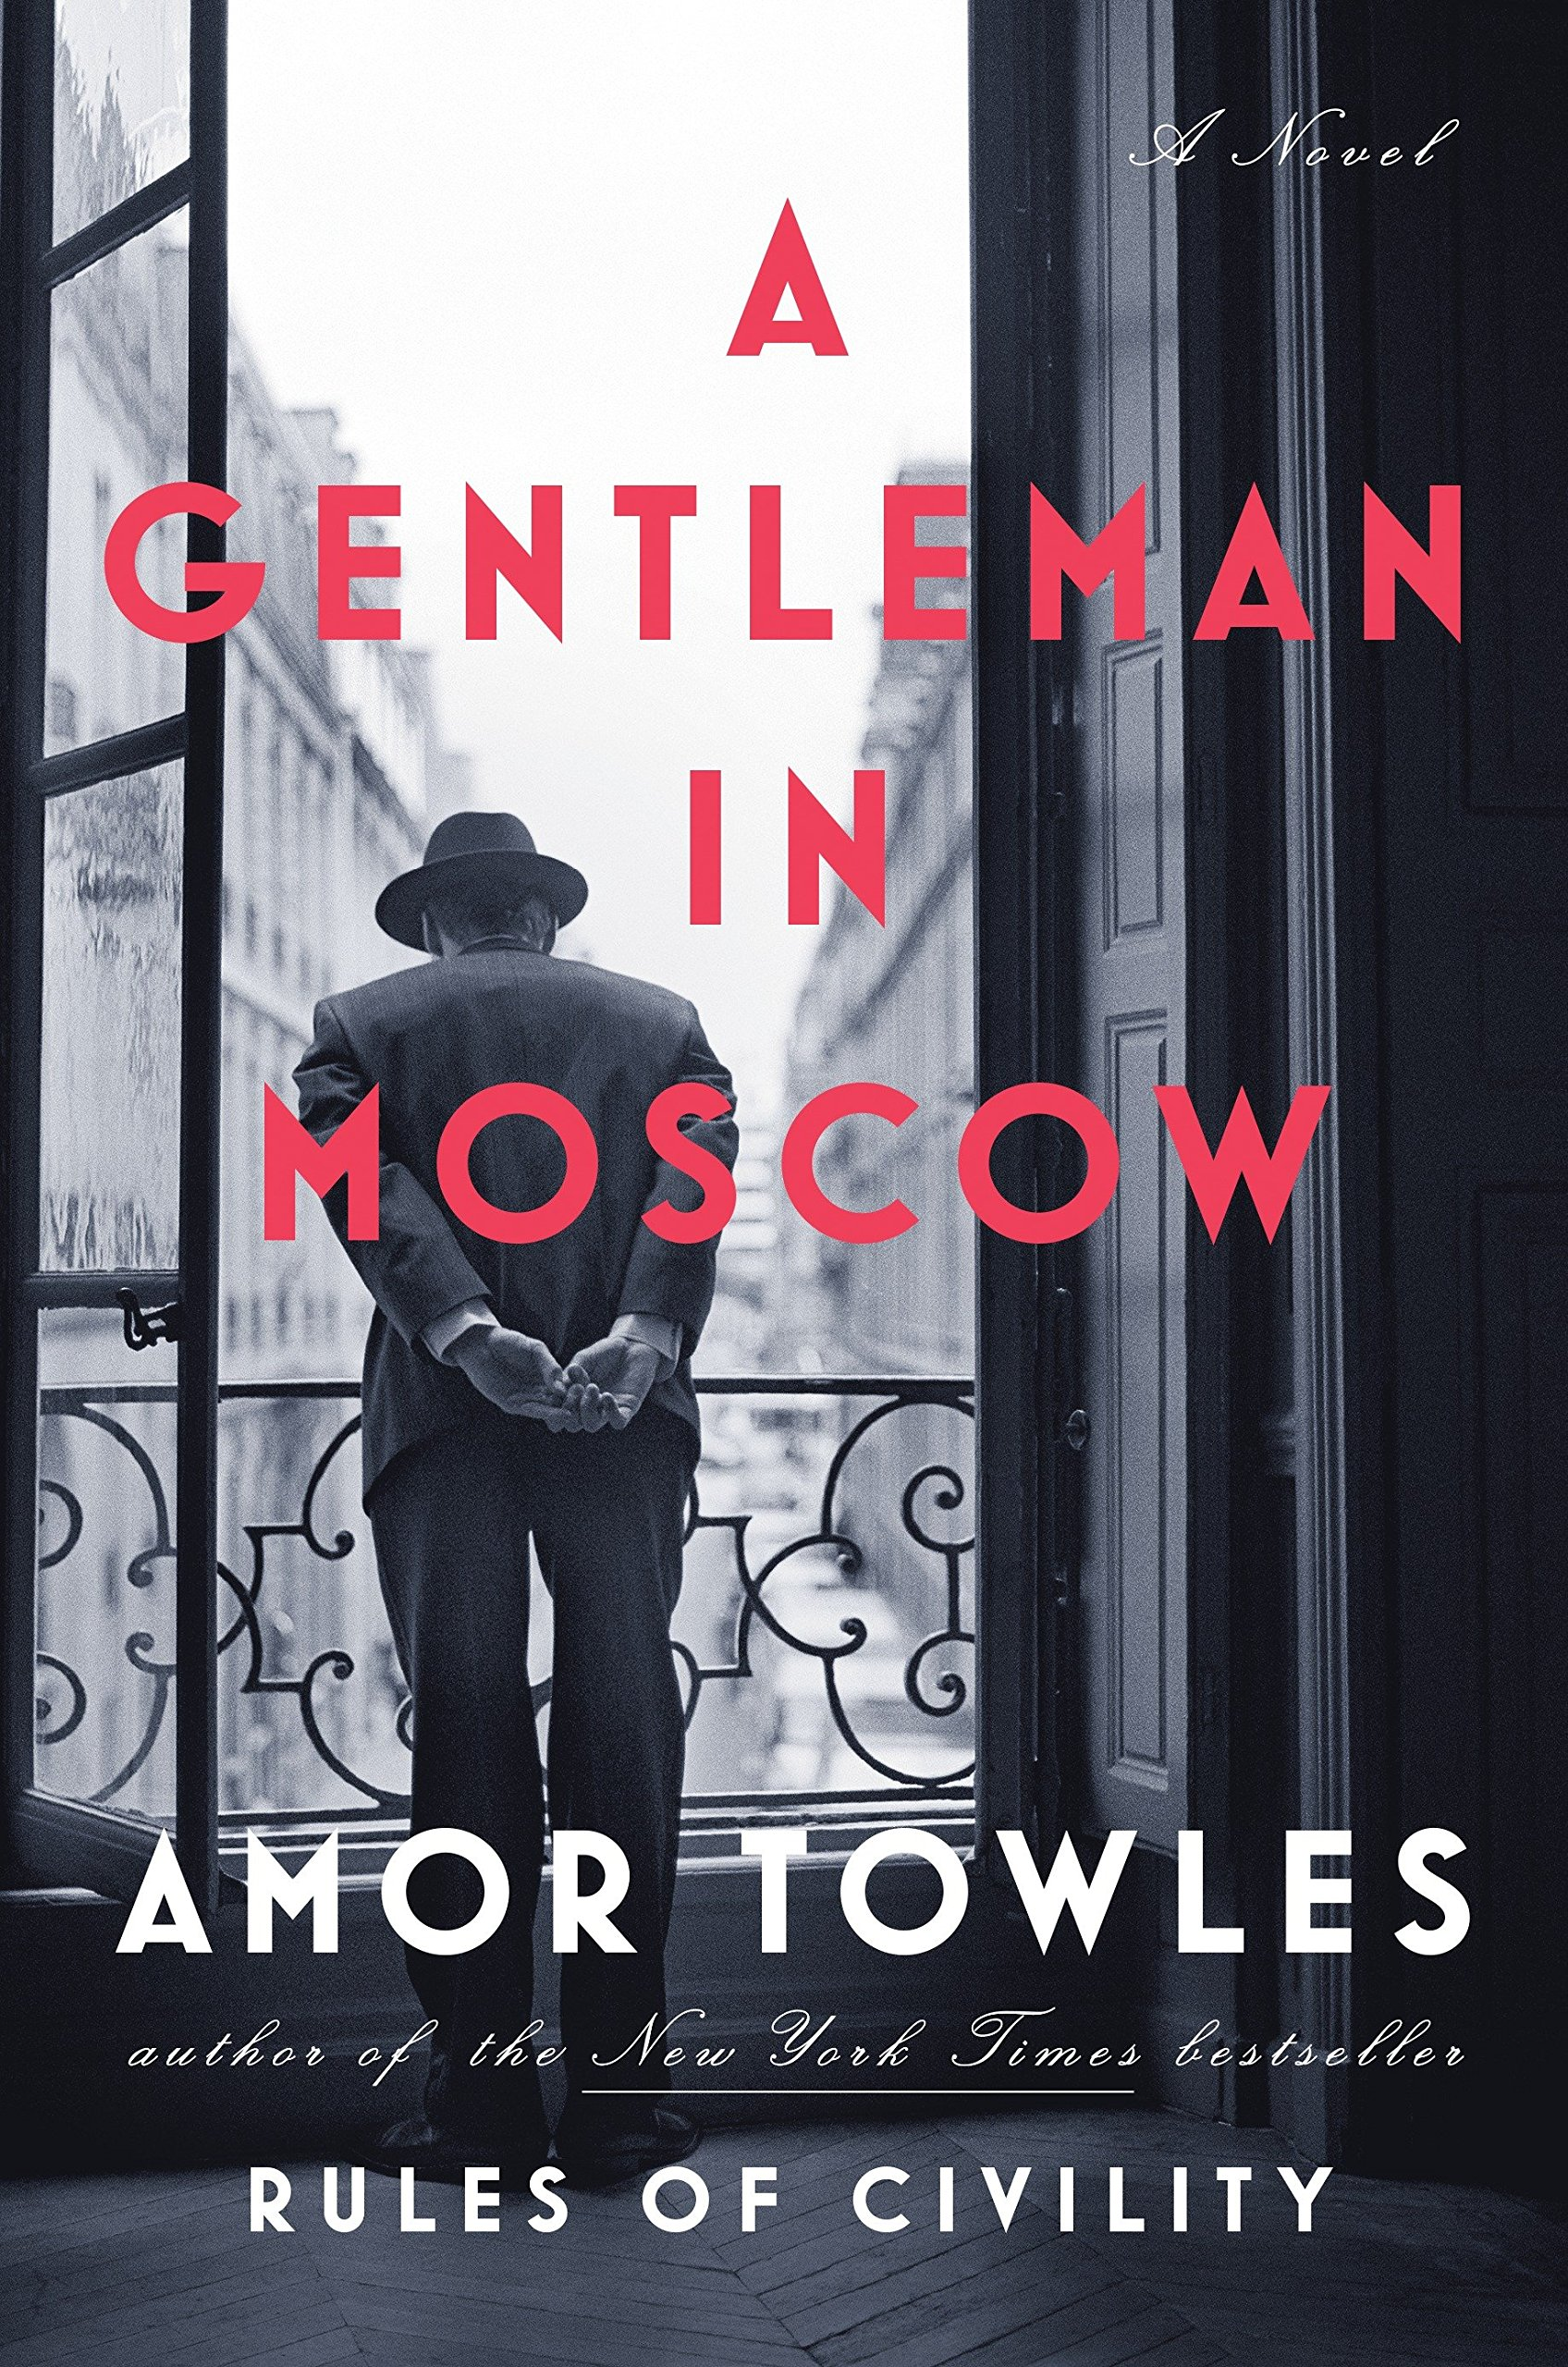 A Gentleman in Moscow: A Novel: Towles, Amor: 9780670026197 ...